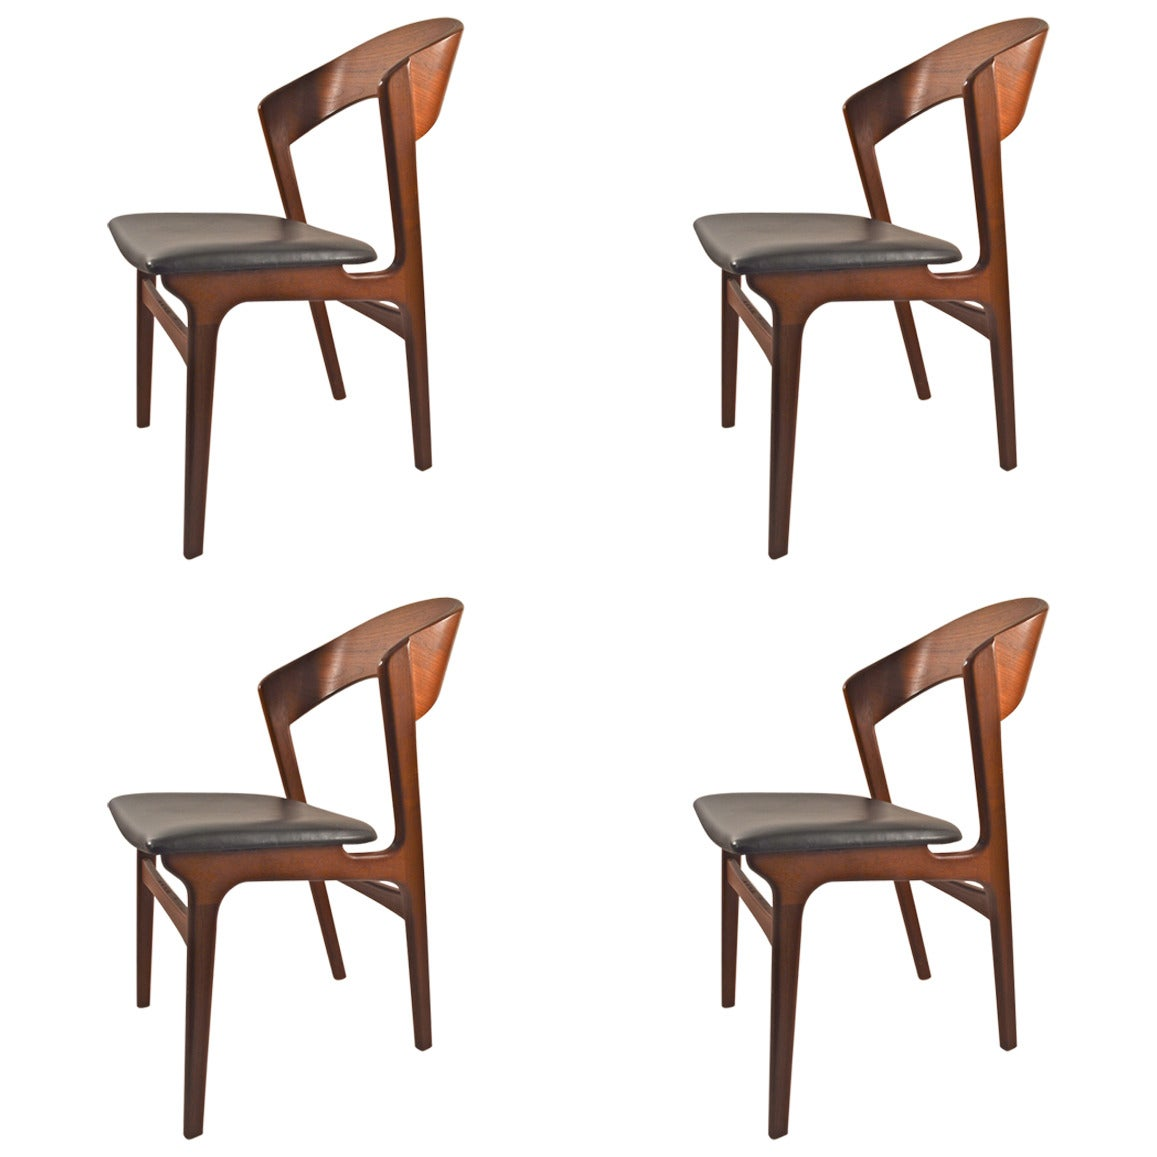 set of four danish modern teak dining chairs by randers mobelfabrik at